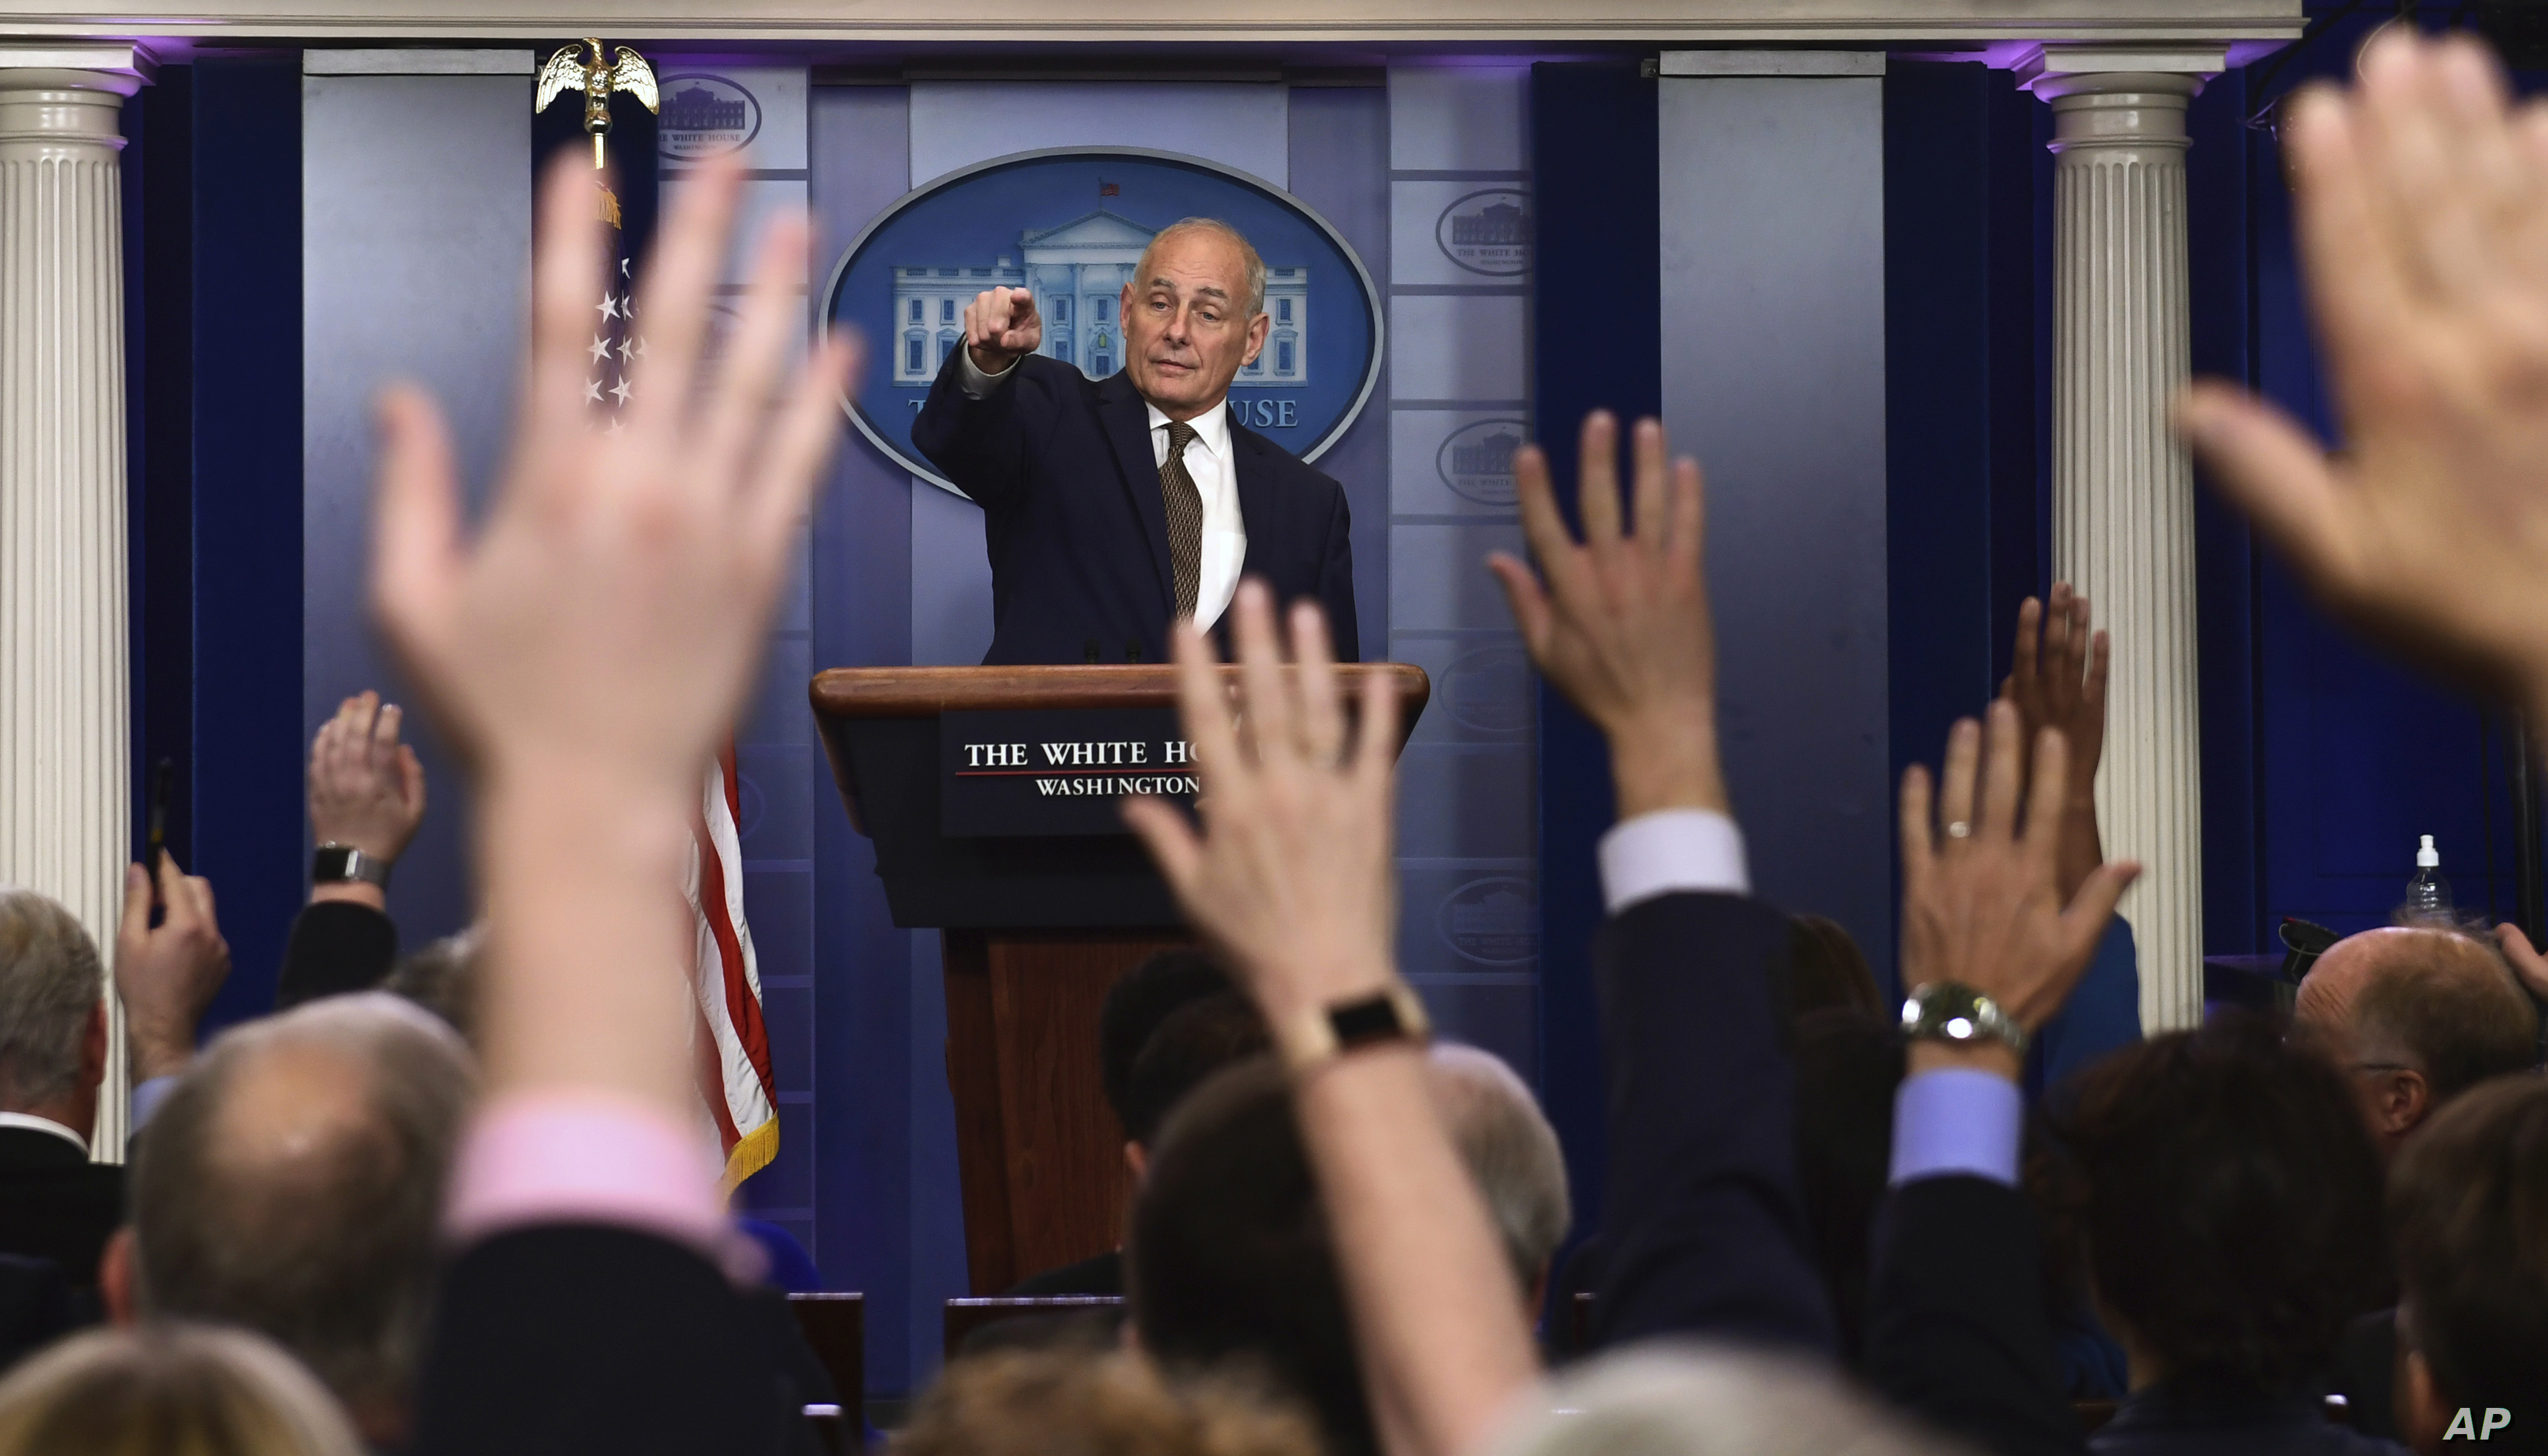 White House Chief of Staff John Kelly calls on a reporter during the daily briefing at the White House in Washington, Oct. 12, 2017.